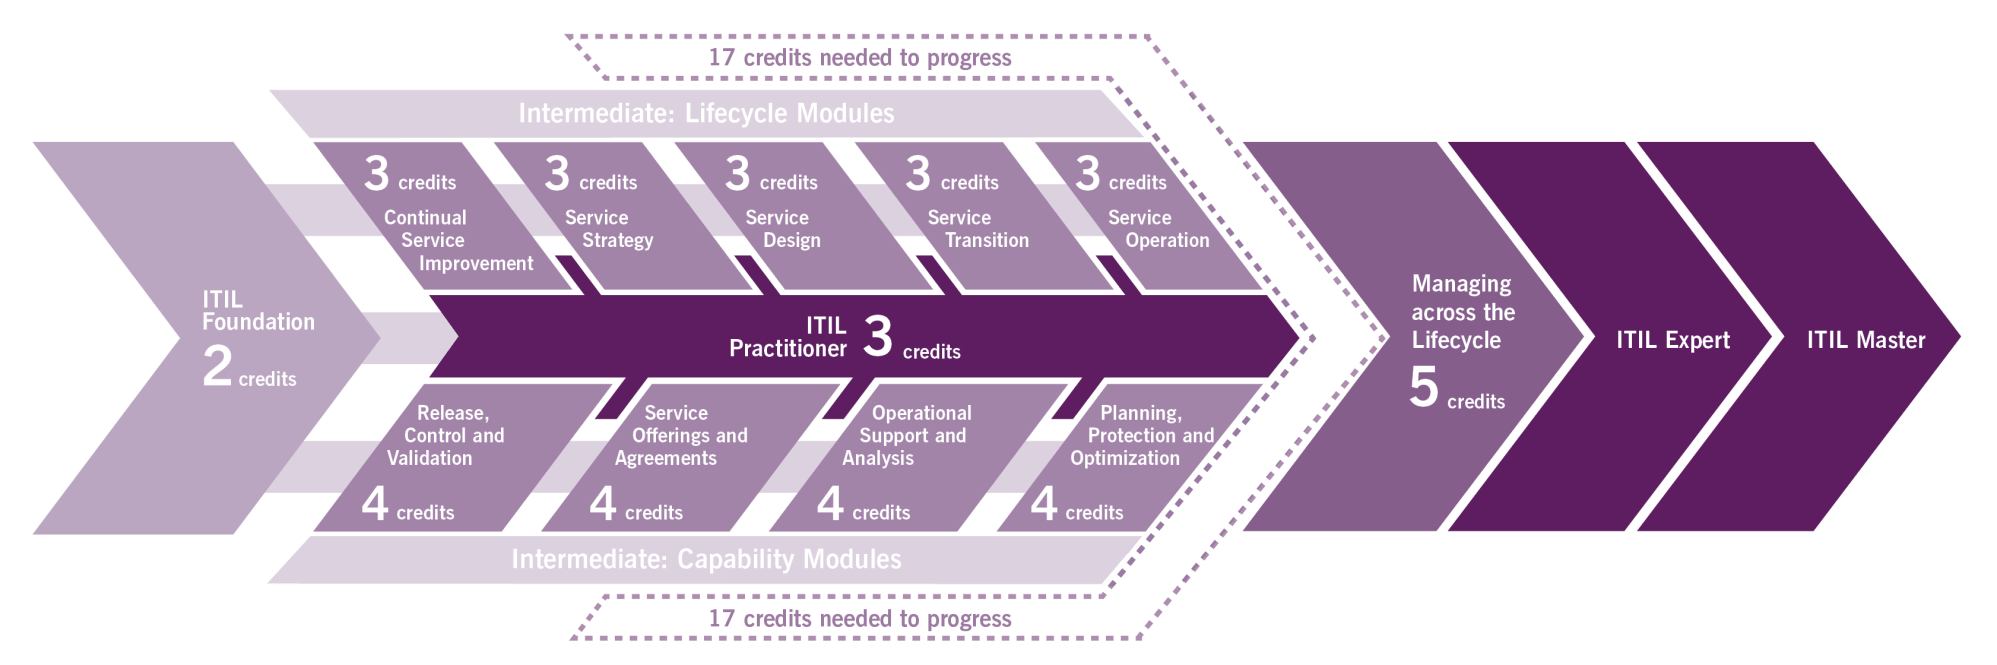 hight resolution of itil certification diagram itil training